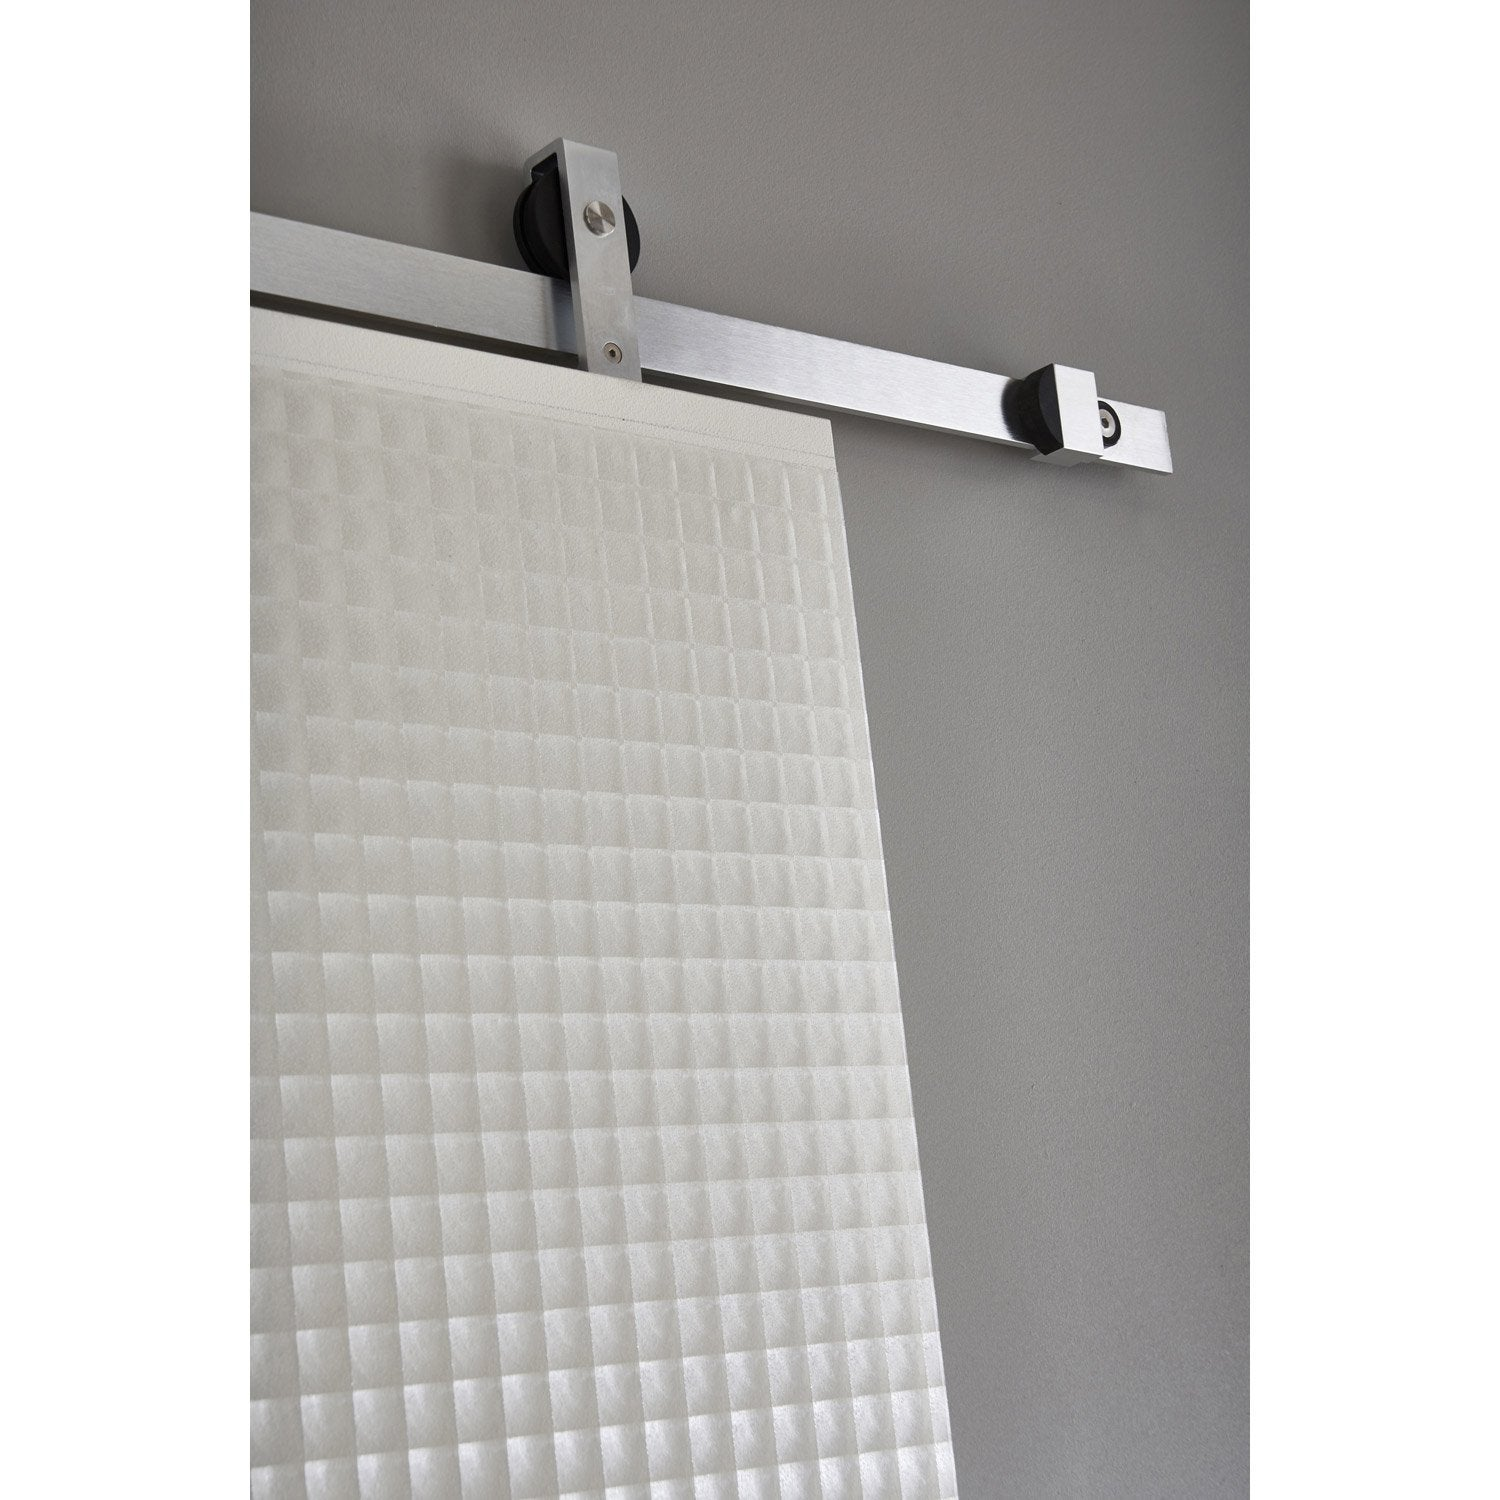 Revetement adhesif mural cuisine lambris adhsif dalle for Carrelage adhesif salle de bain avec led plafond leroy merlin